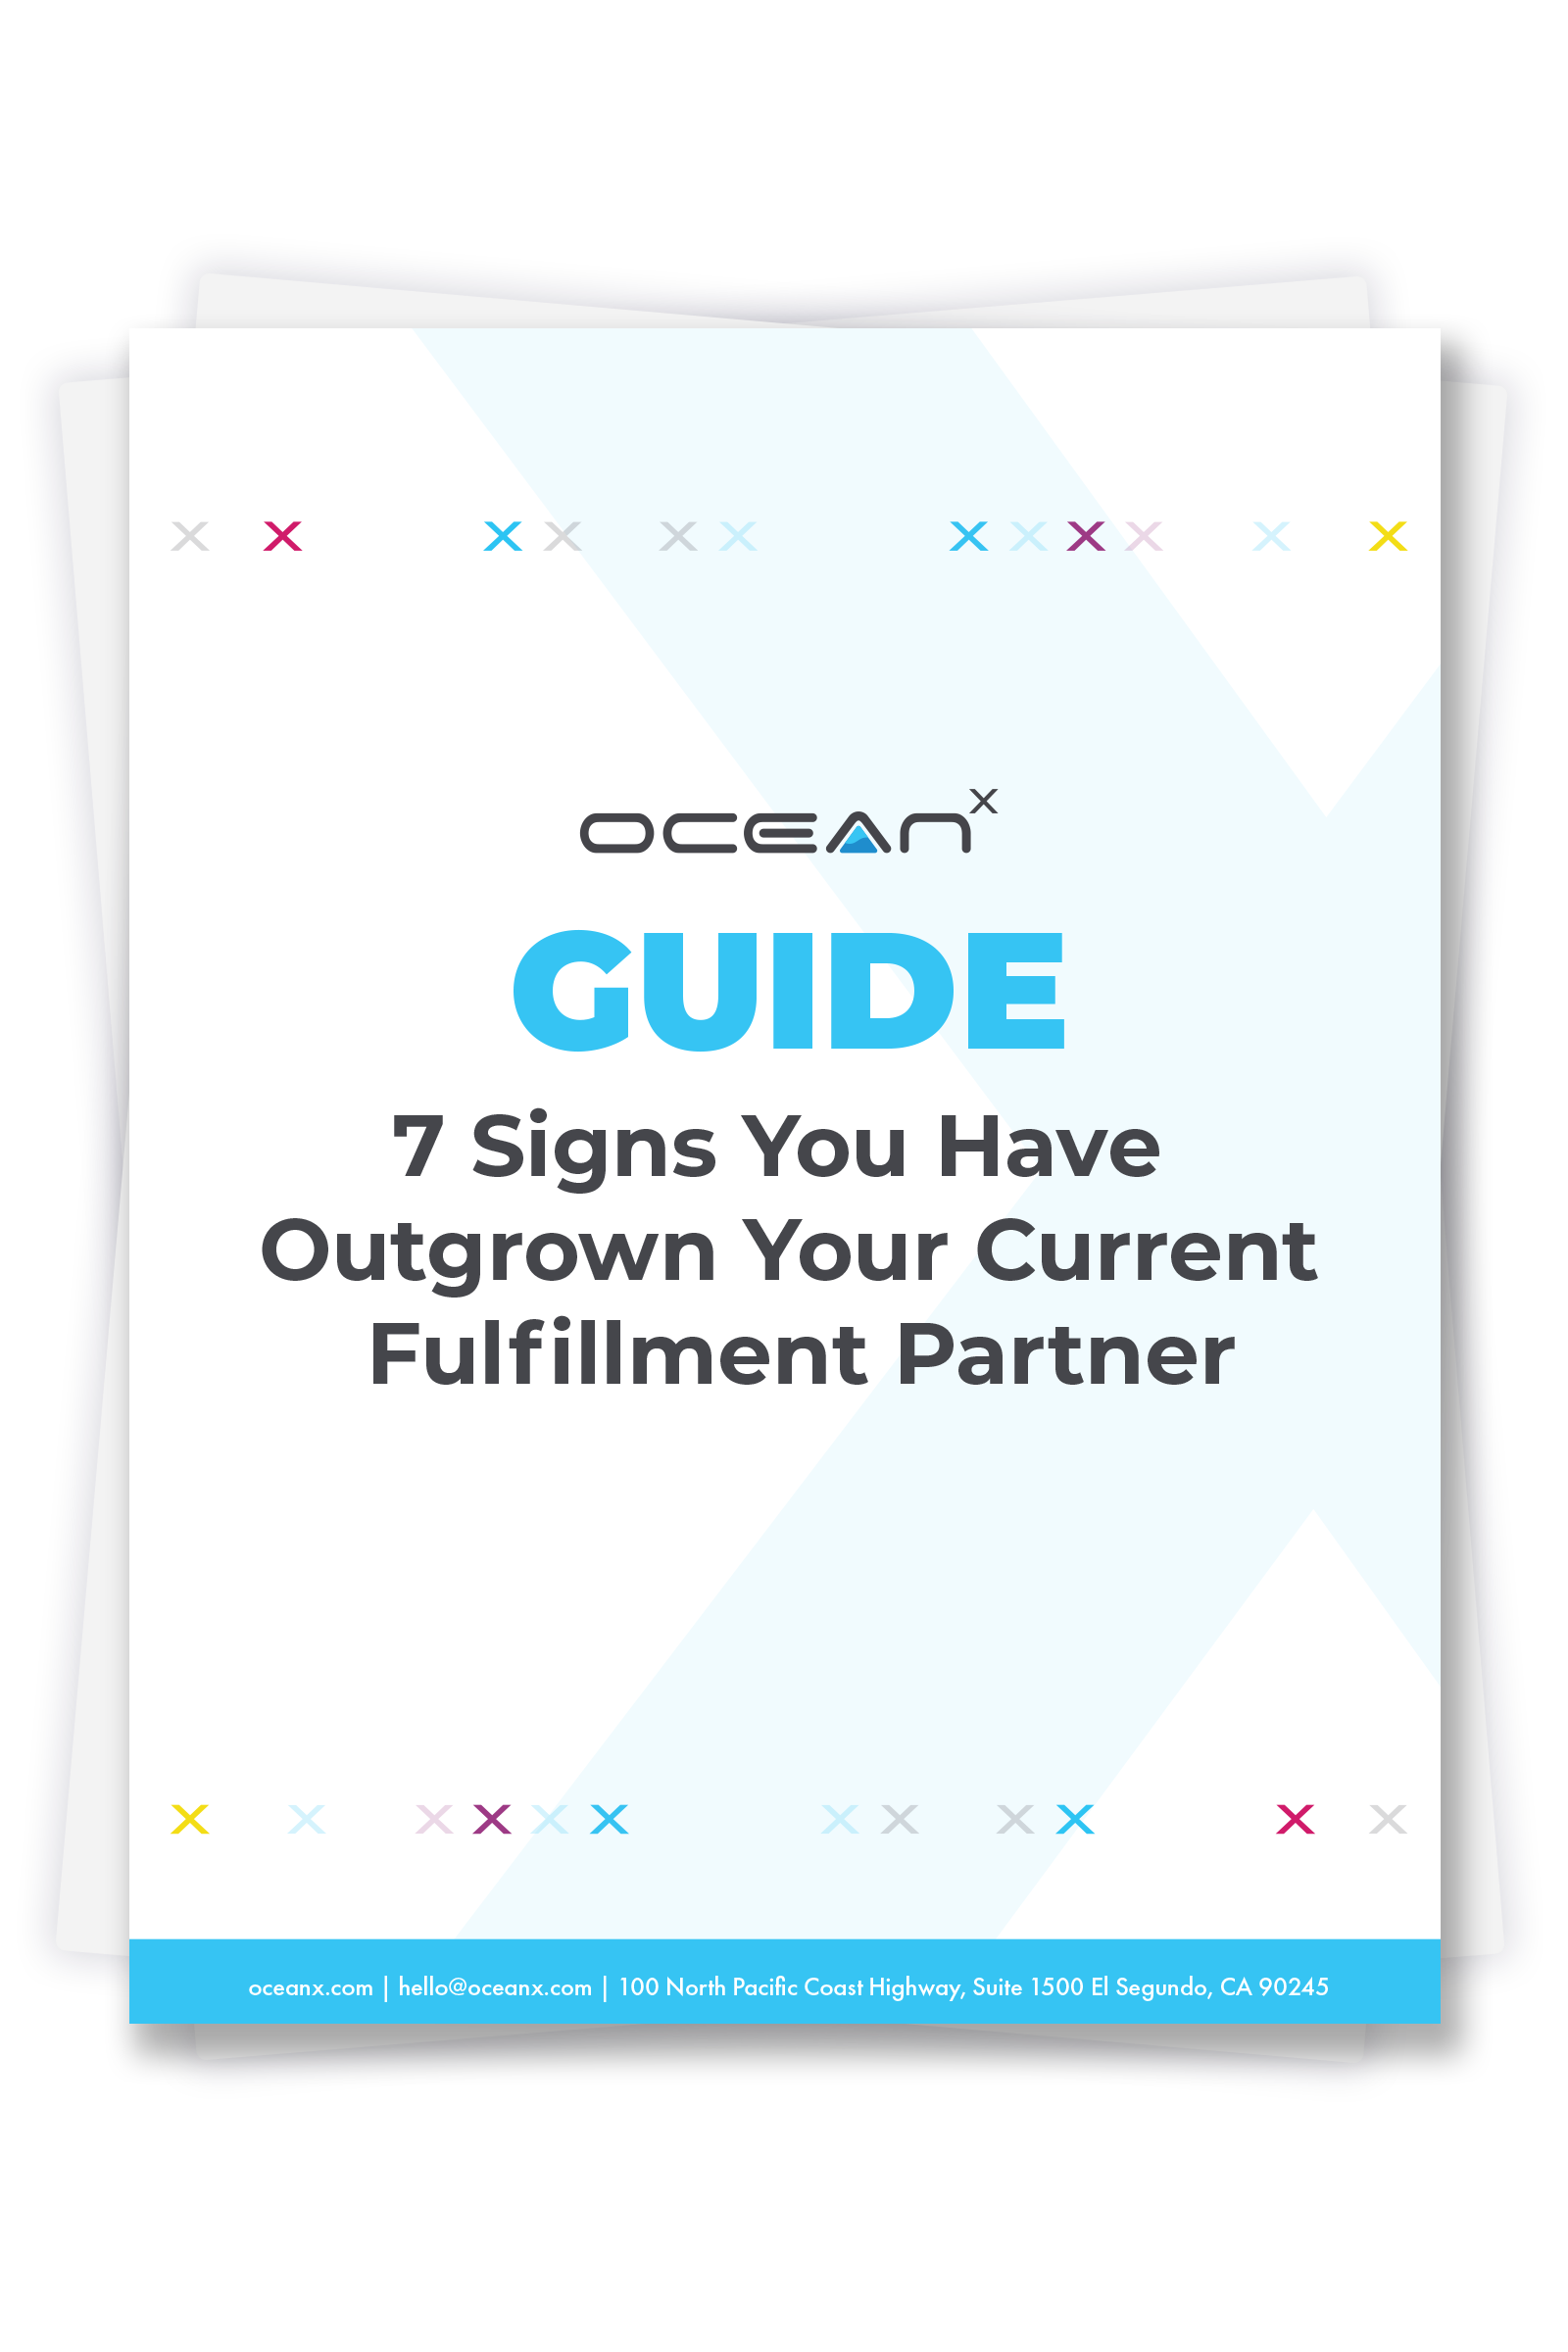 1084703_Cover Image (7 Signs You Have Outgrown Your Current Fulfillment Partner)_01_060721